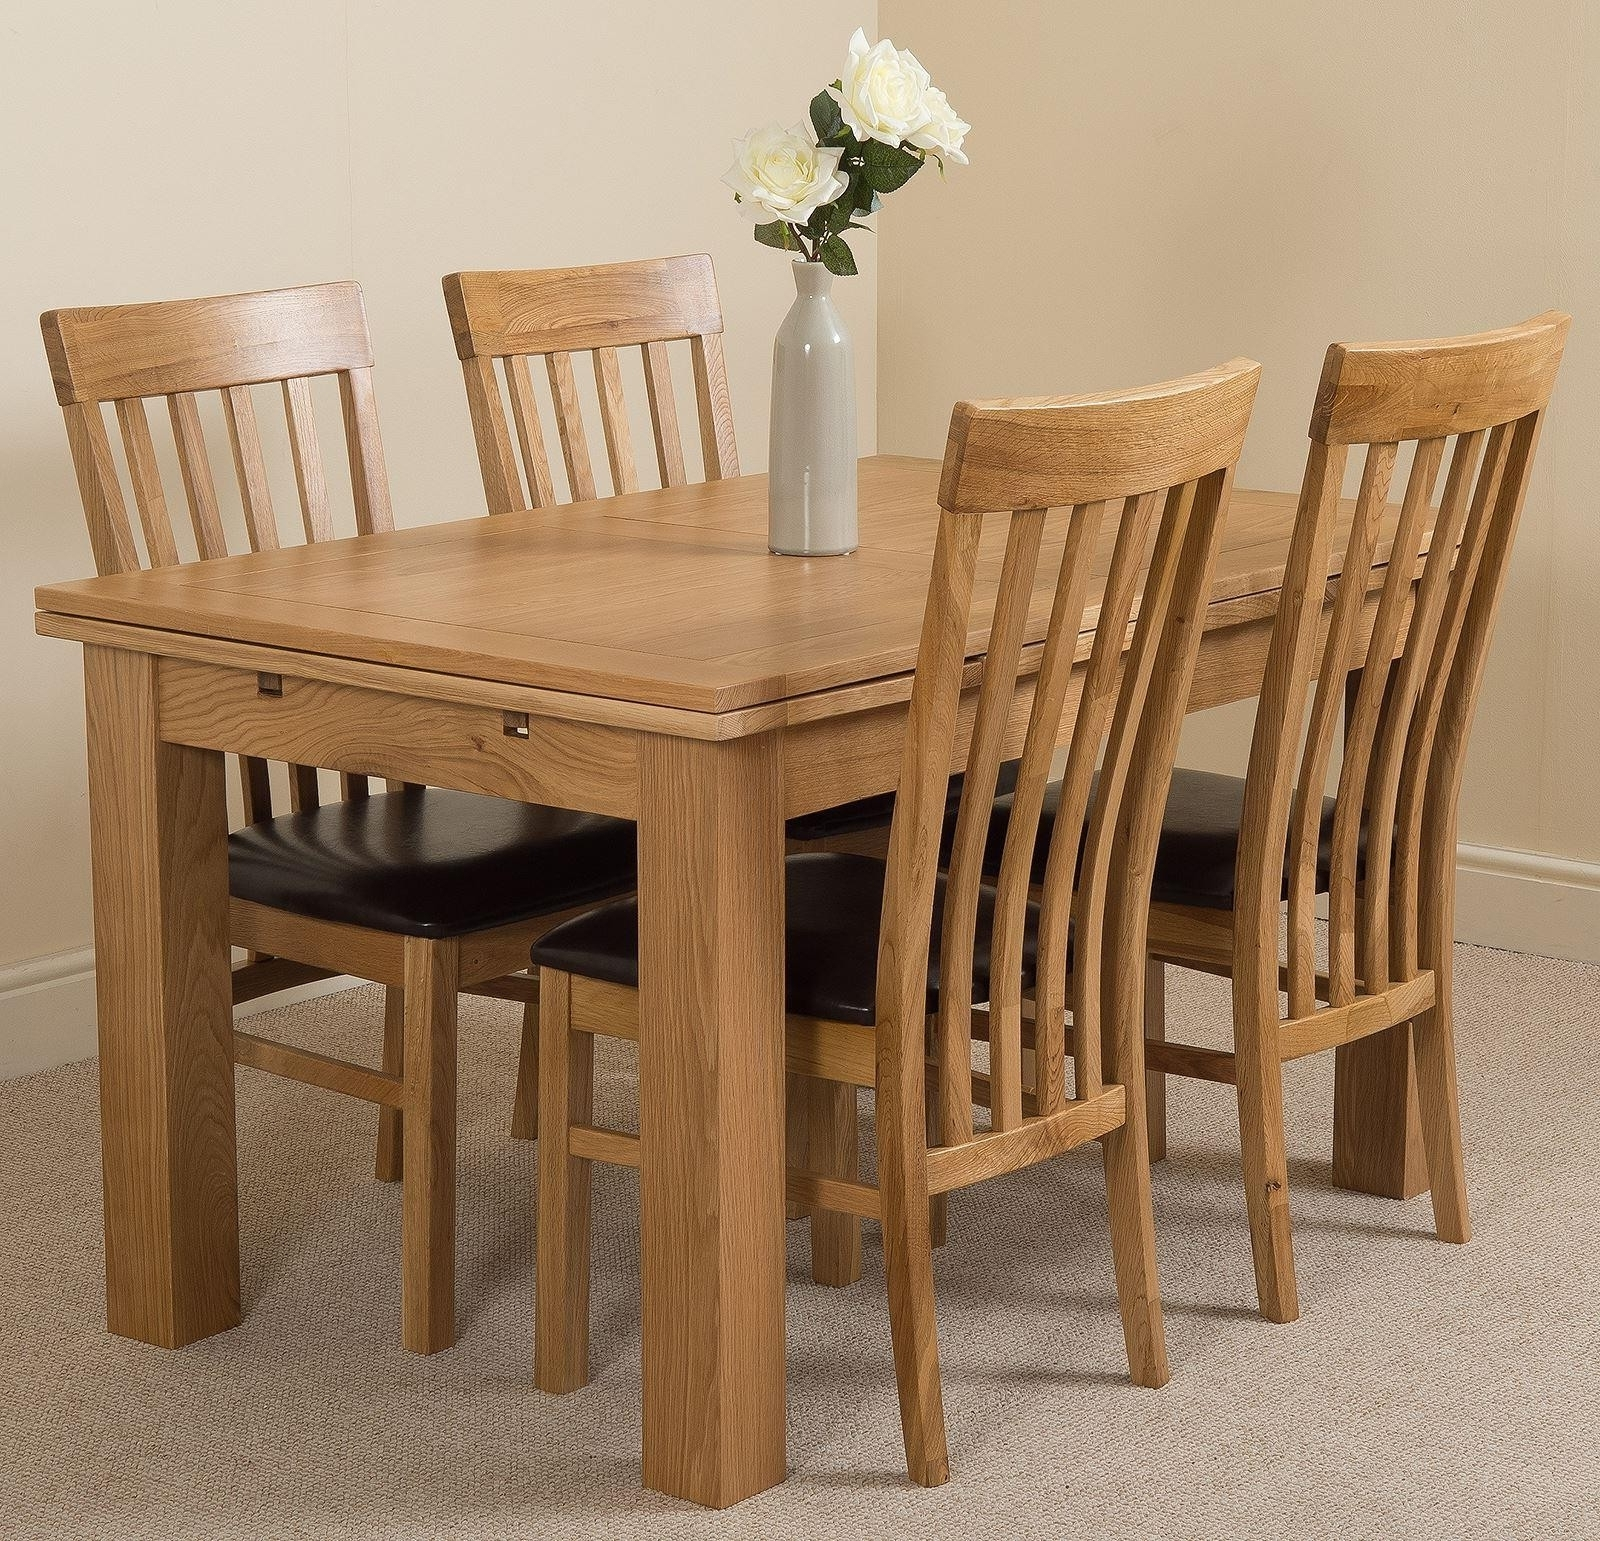 Richmond Oak Small Dining Set 4 Harvard Chairs Throughout Popular Light Oak Dining Tables And Chairs (View 6 of 25)